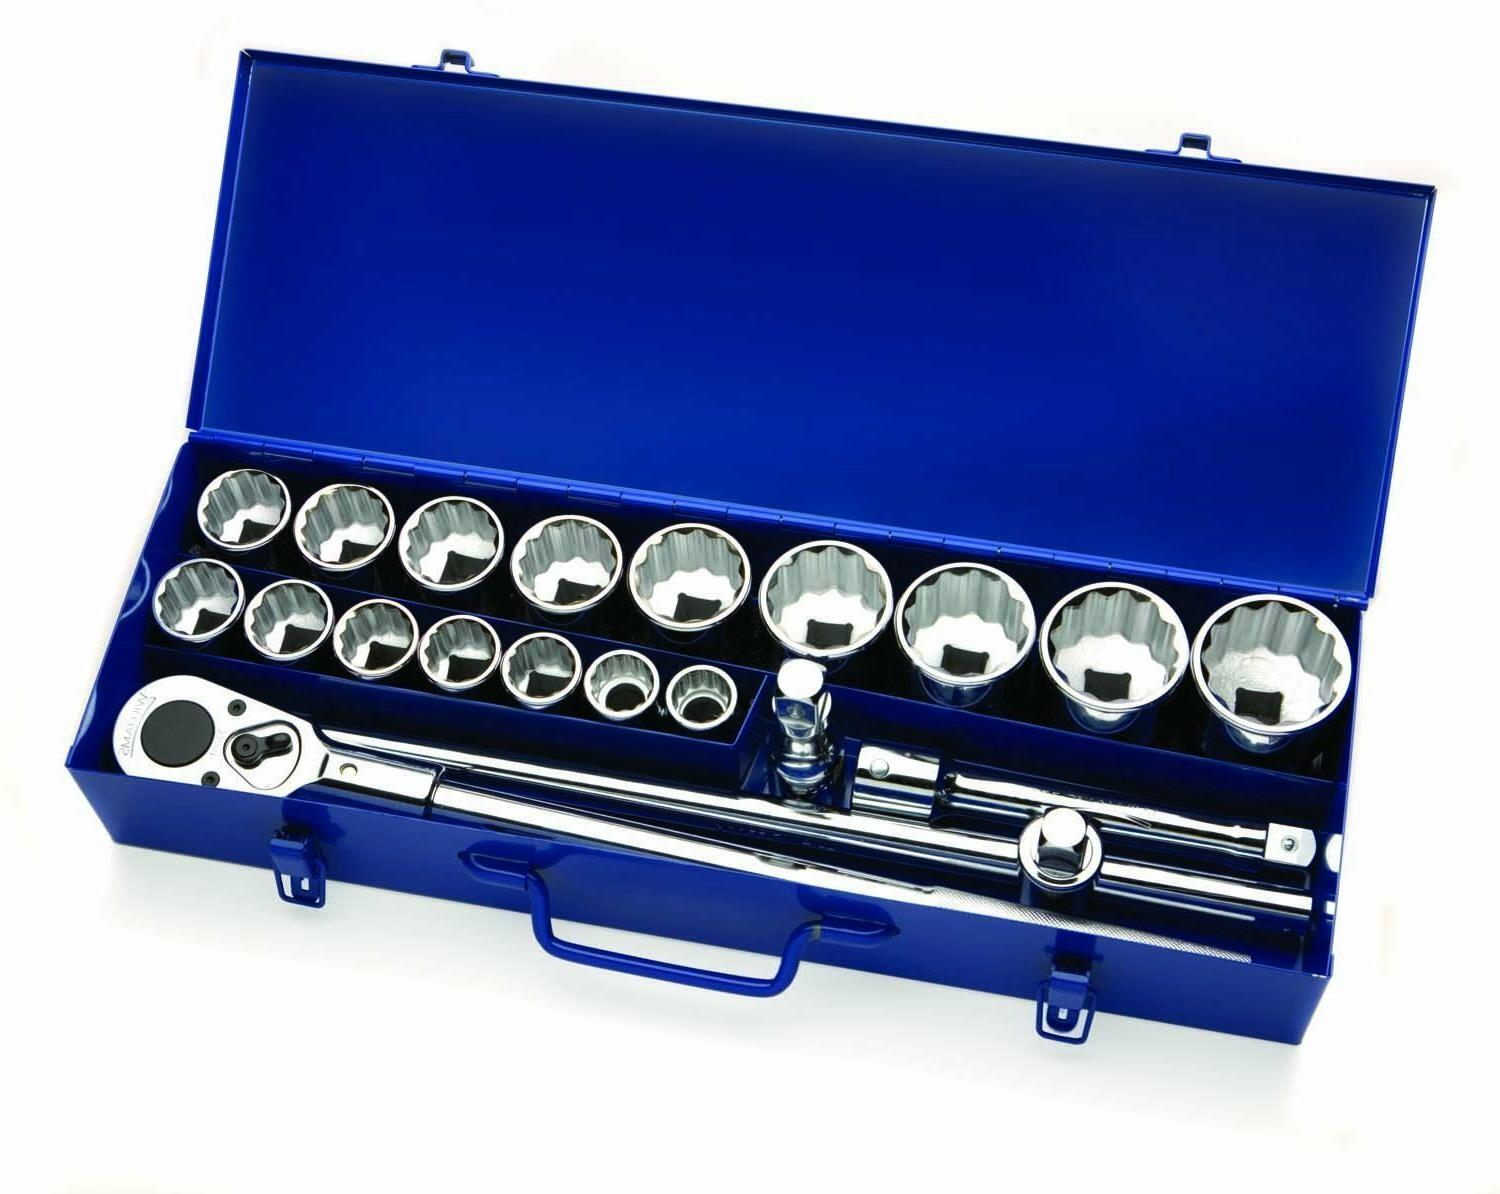 "Williams 33901 20 Pieces 3/4"" Drive Socket Set in Metal Box"